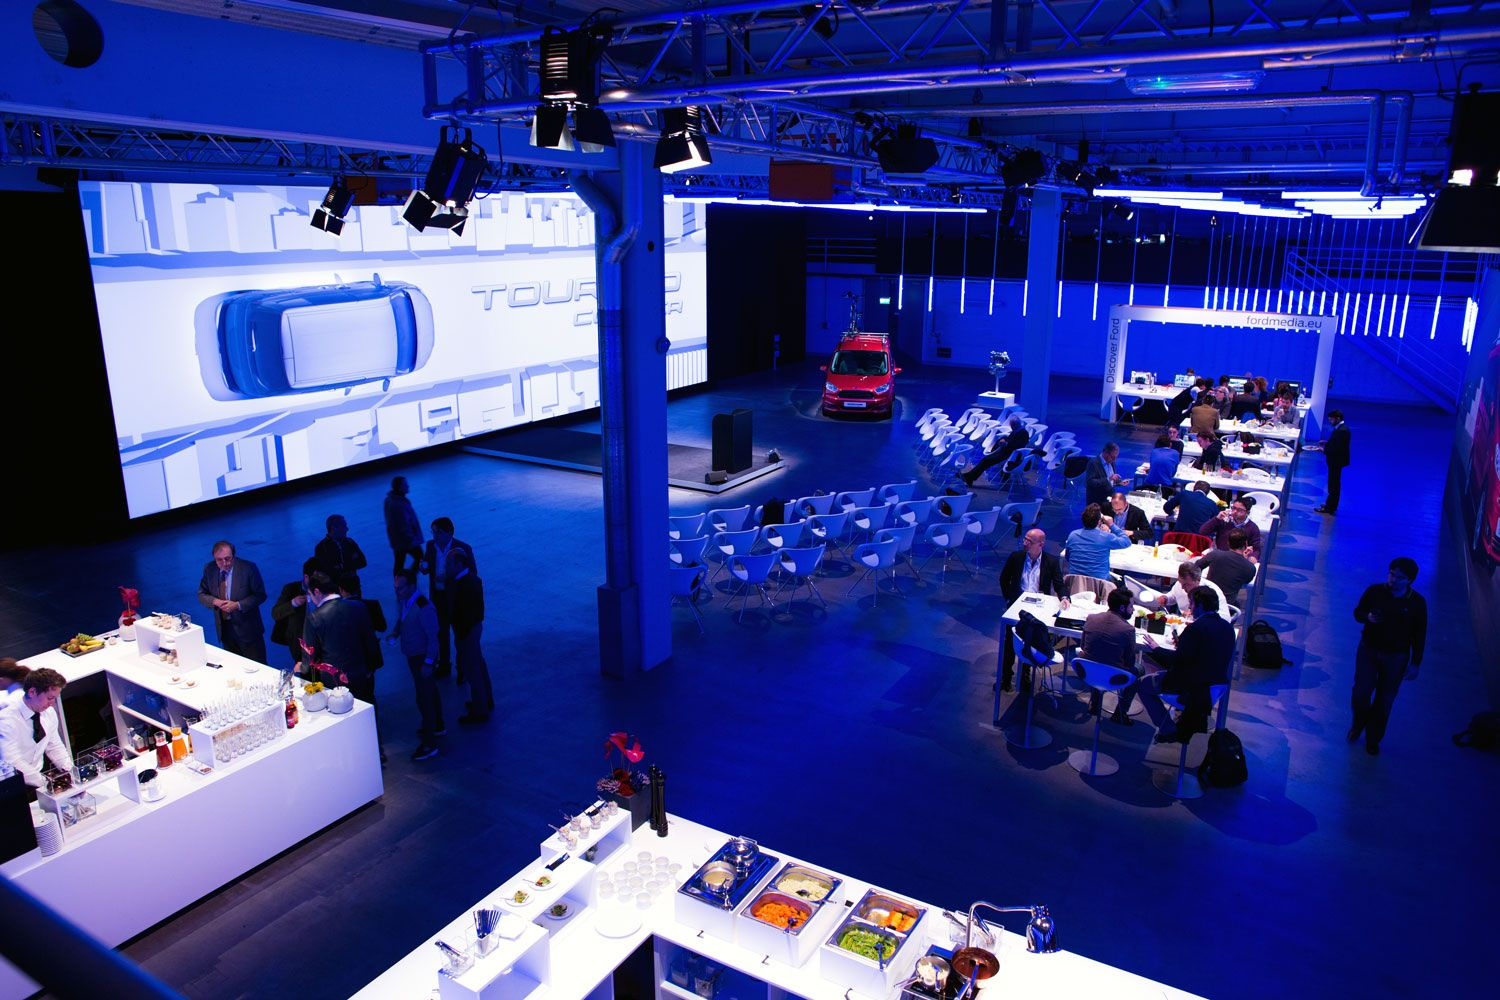 Ford tourneo courier pictures to pin on pinterest - Mansfields Transformed A Warehouse In Frankfurt Into The Product Launch Of The New Ford Tourneo Courier